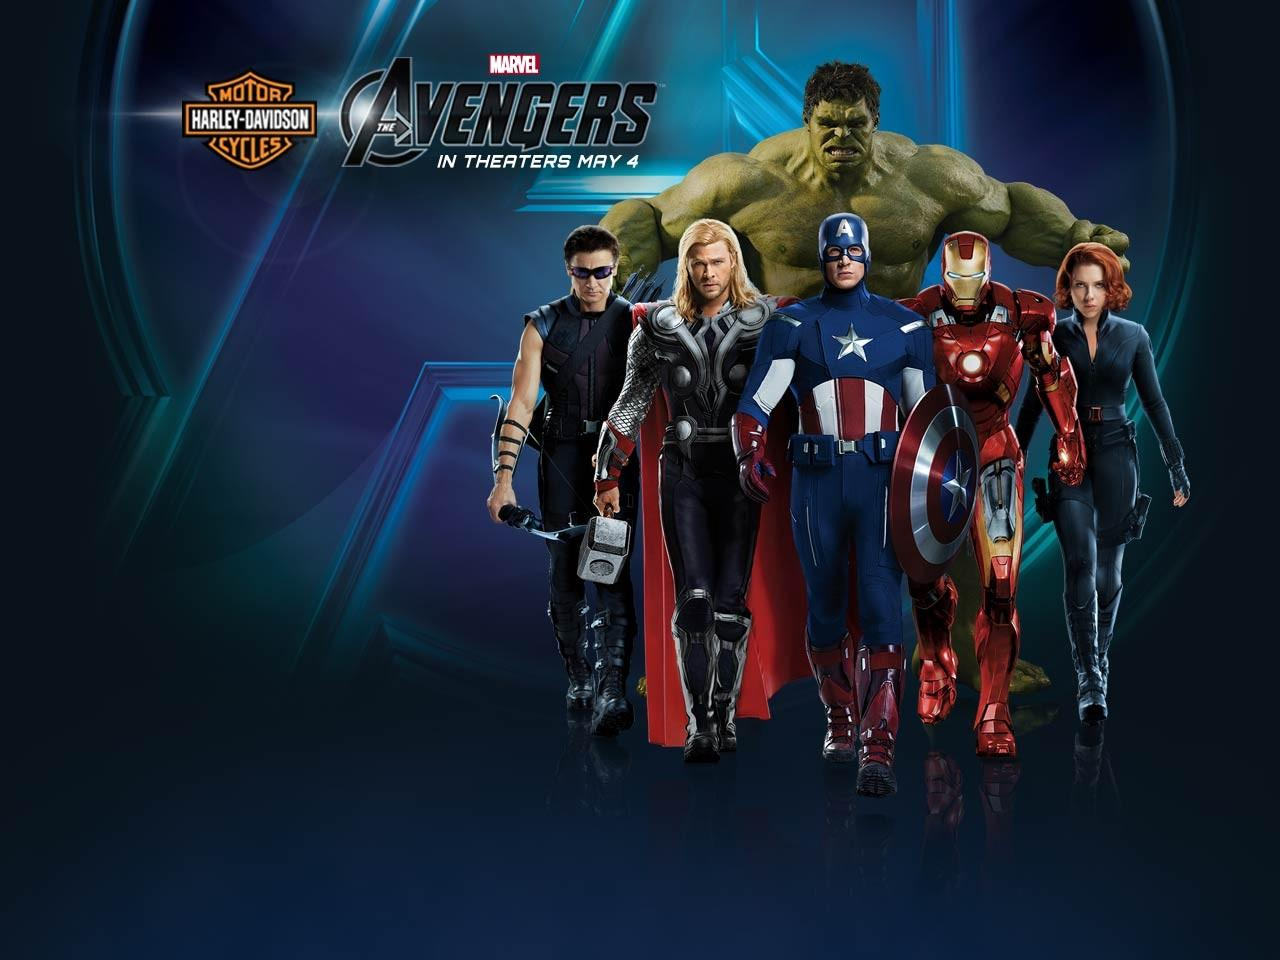 The avengers the avengers harley davidson wallpaper